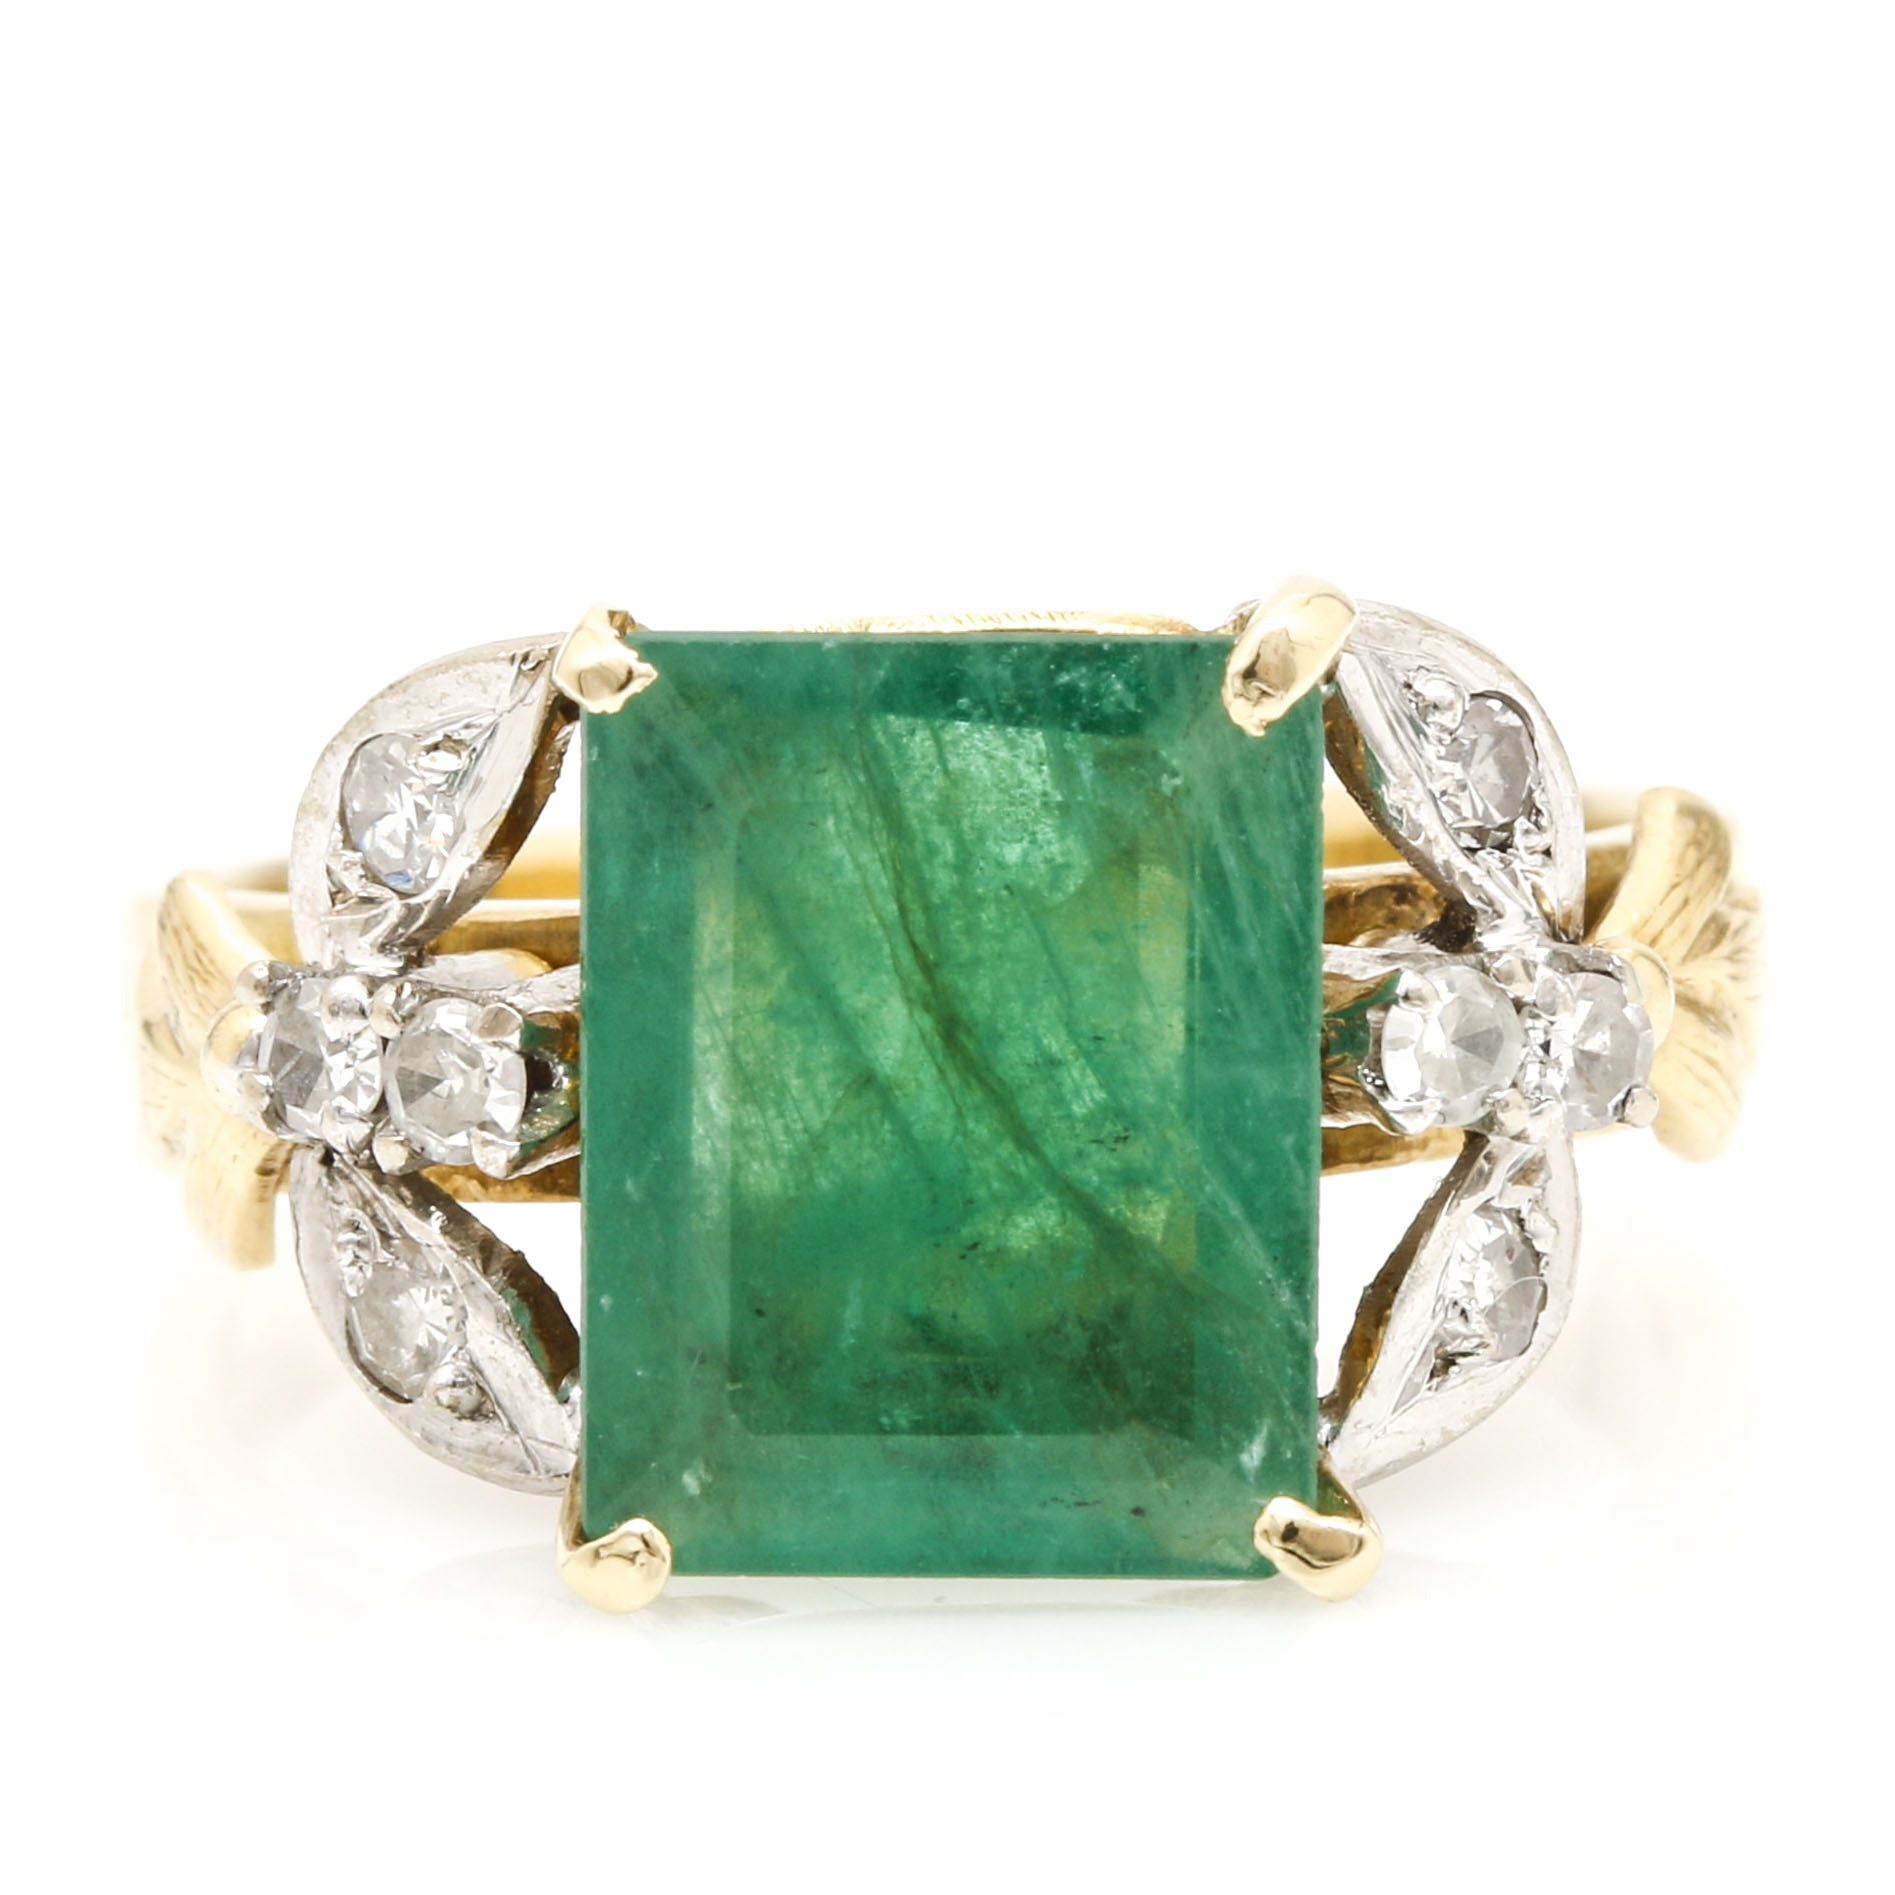 14K Two Tone Gold 2.23 CT Emerald and Diamond Ring